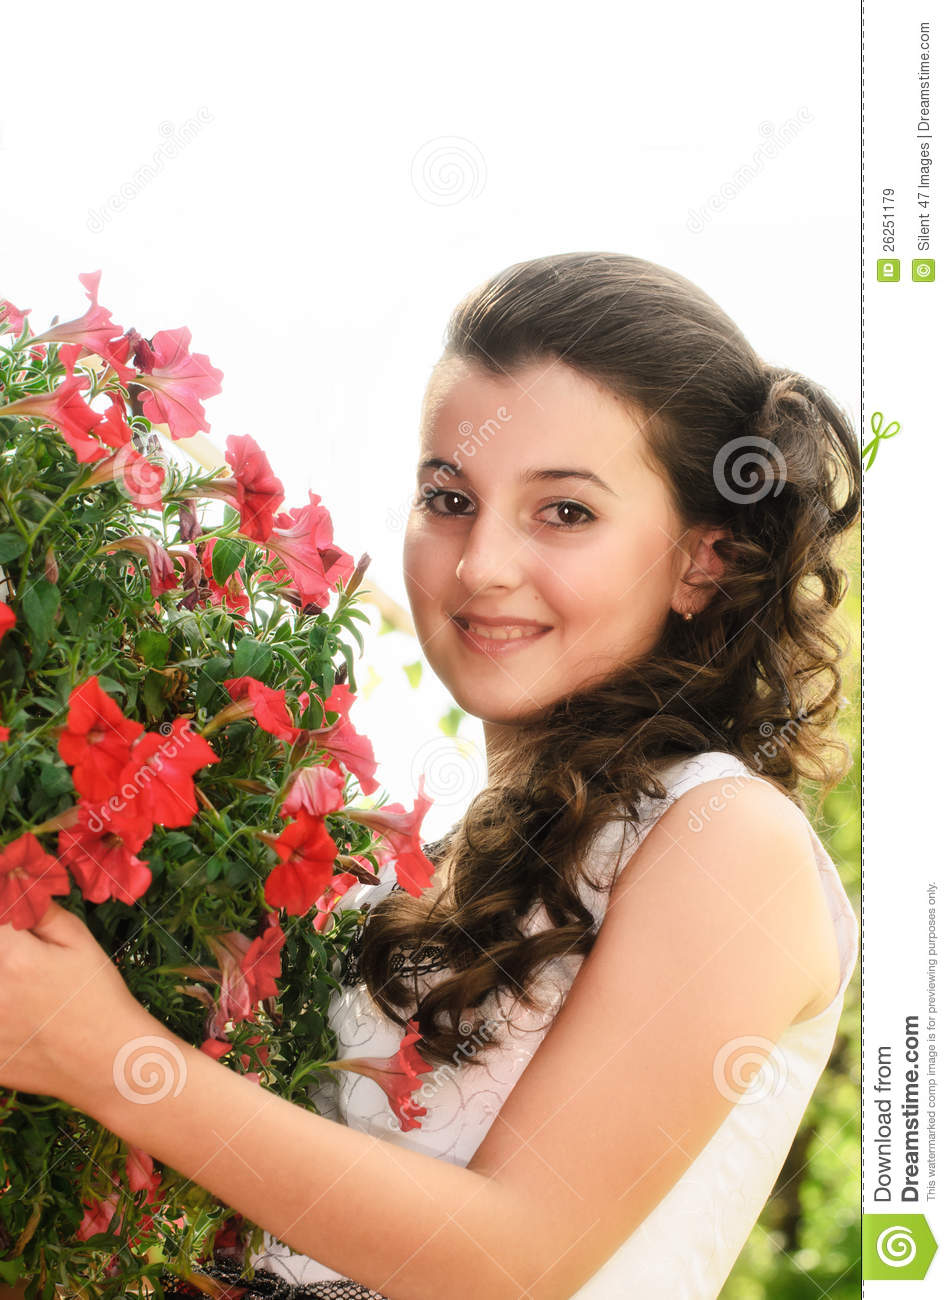 clipart girl holding flowers - photo #45